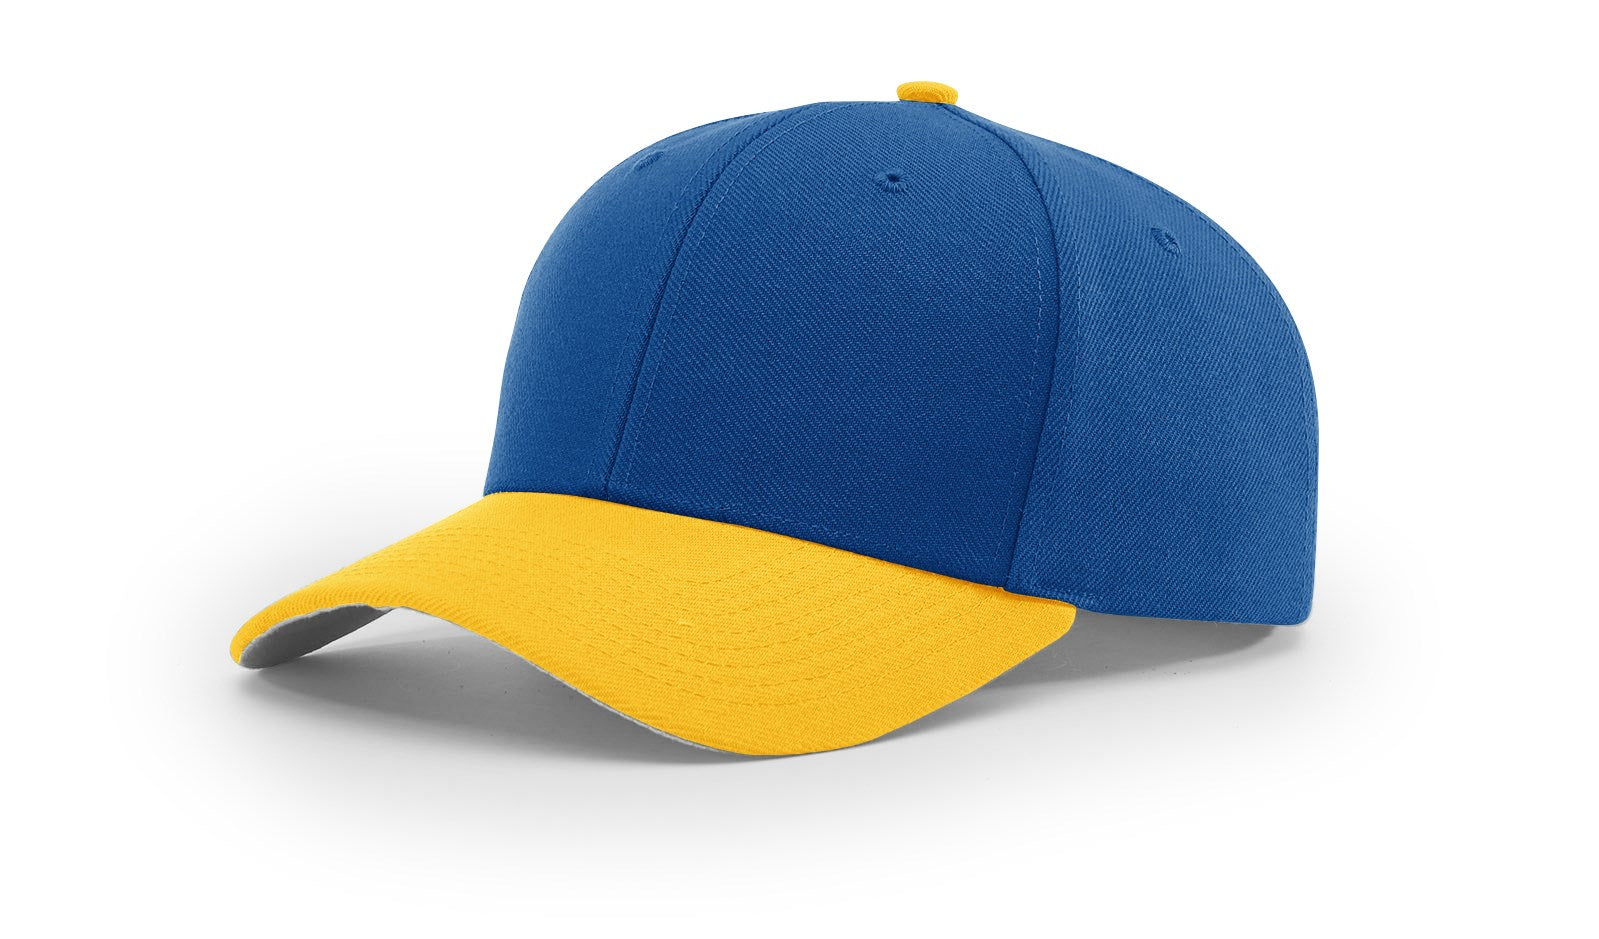 Richardson 514 Strap back combo colors Embroidery Available 25 Colors - AtlanticCoastSports